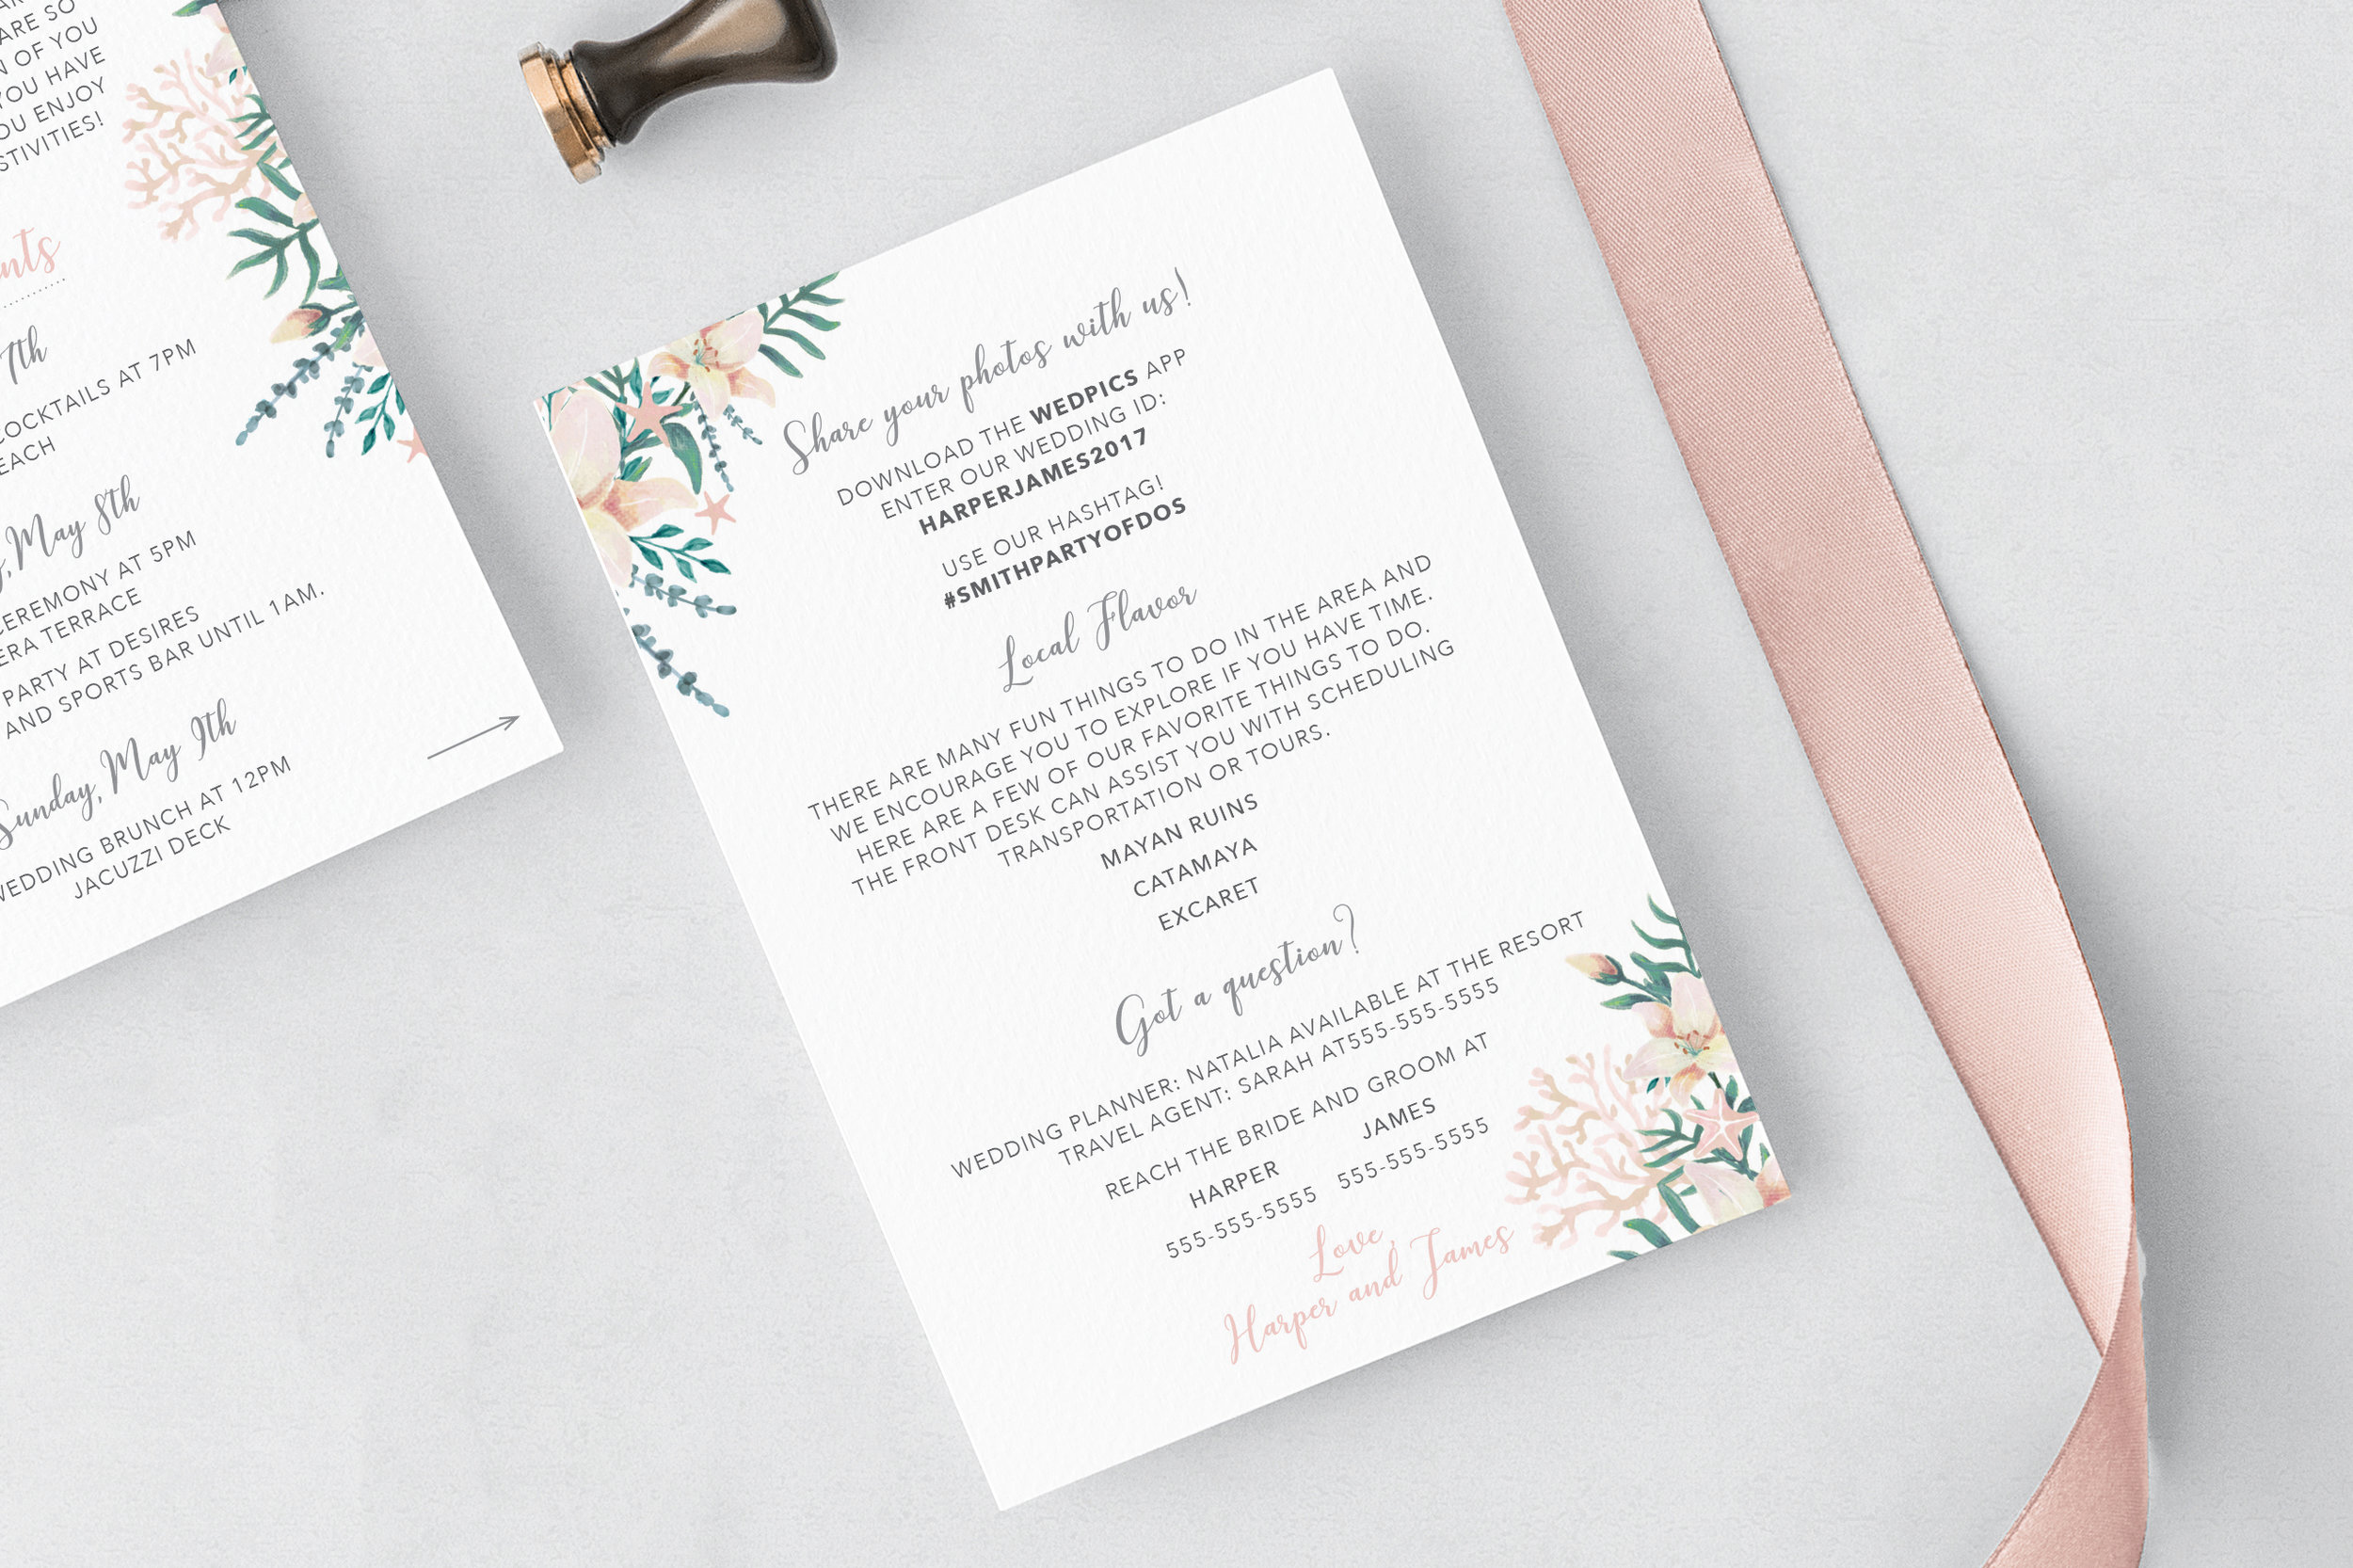 Invitation Cards 21.jpg